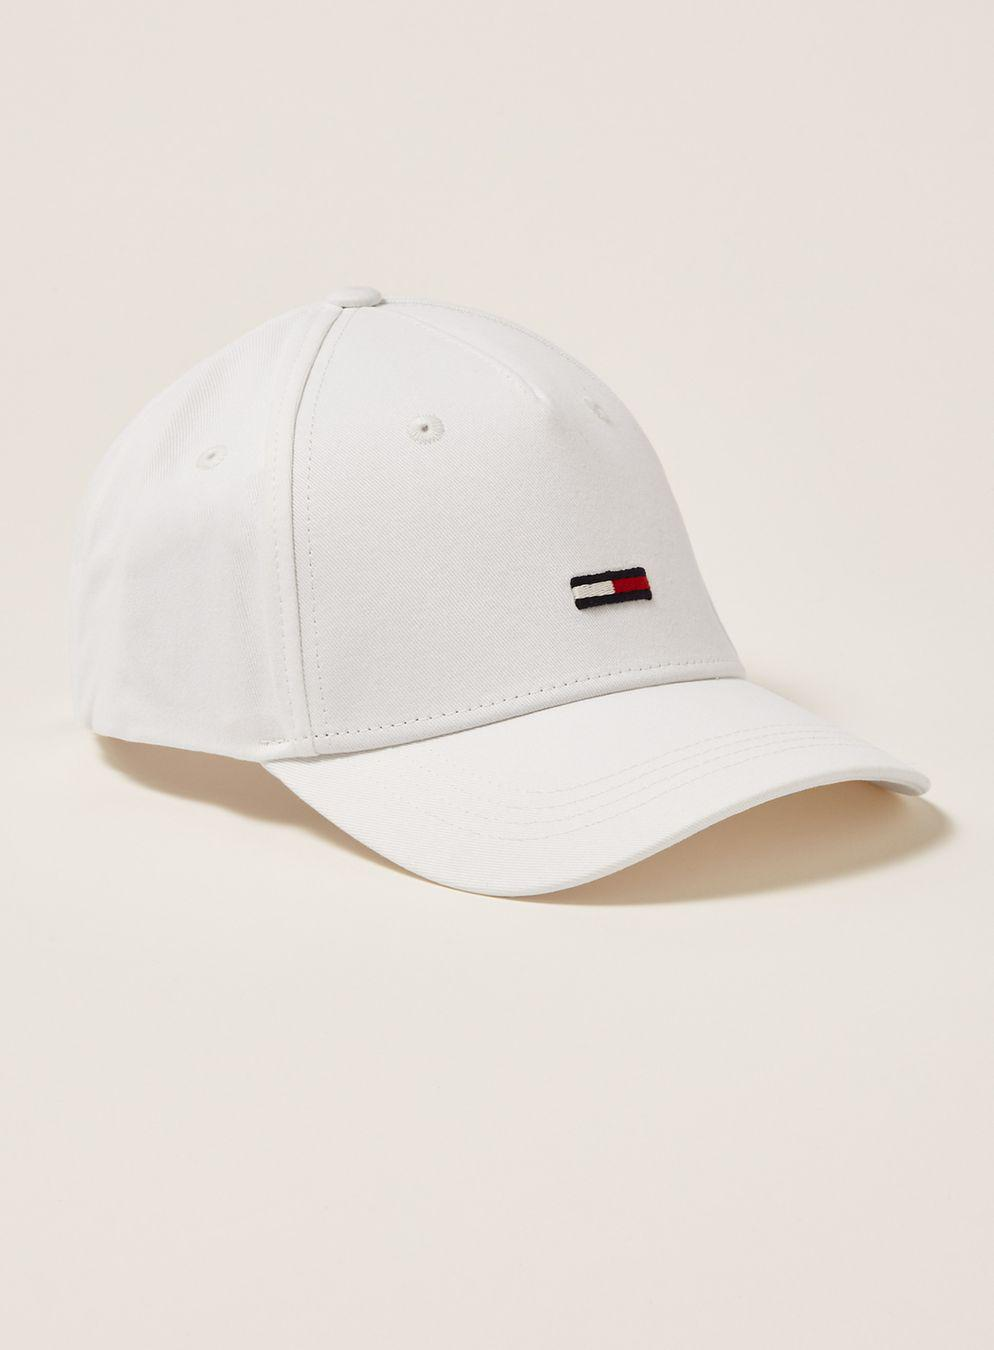 Tommy Hilfiger White Cap in White for Men - Lyst aad08a9a8ebe